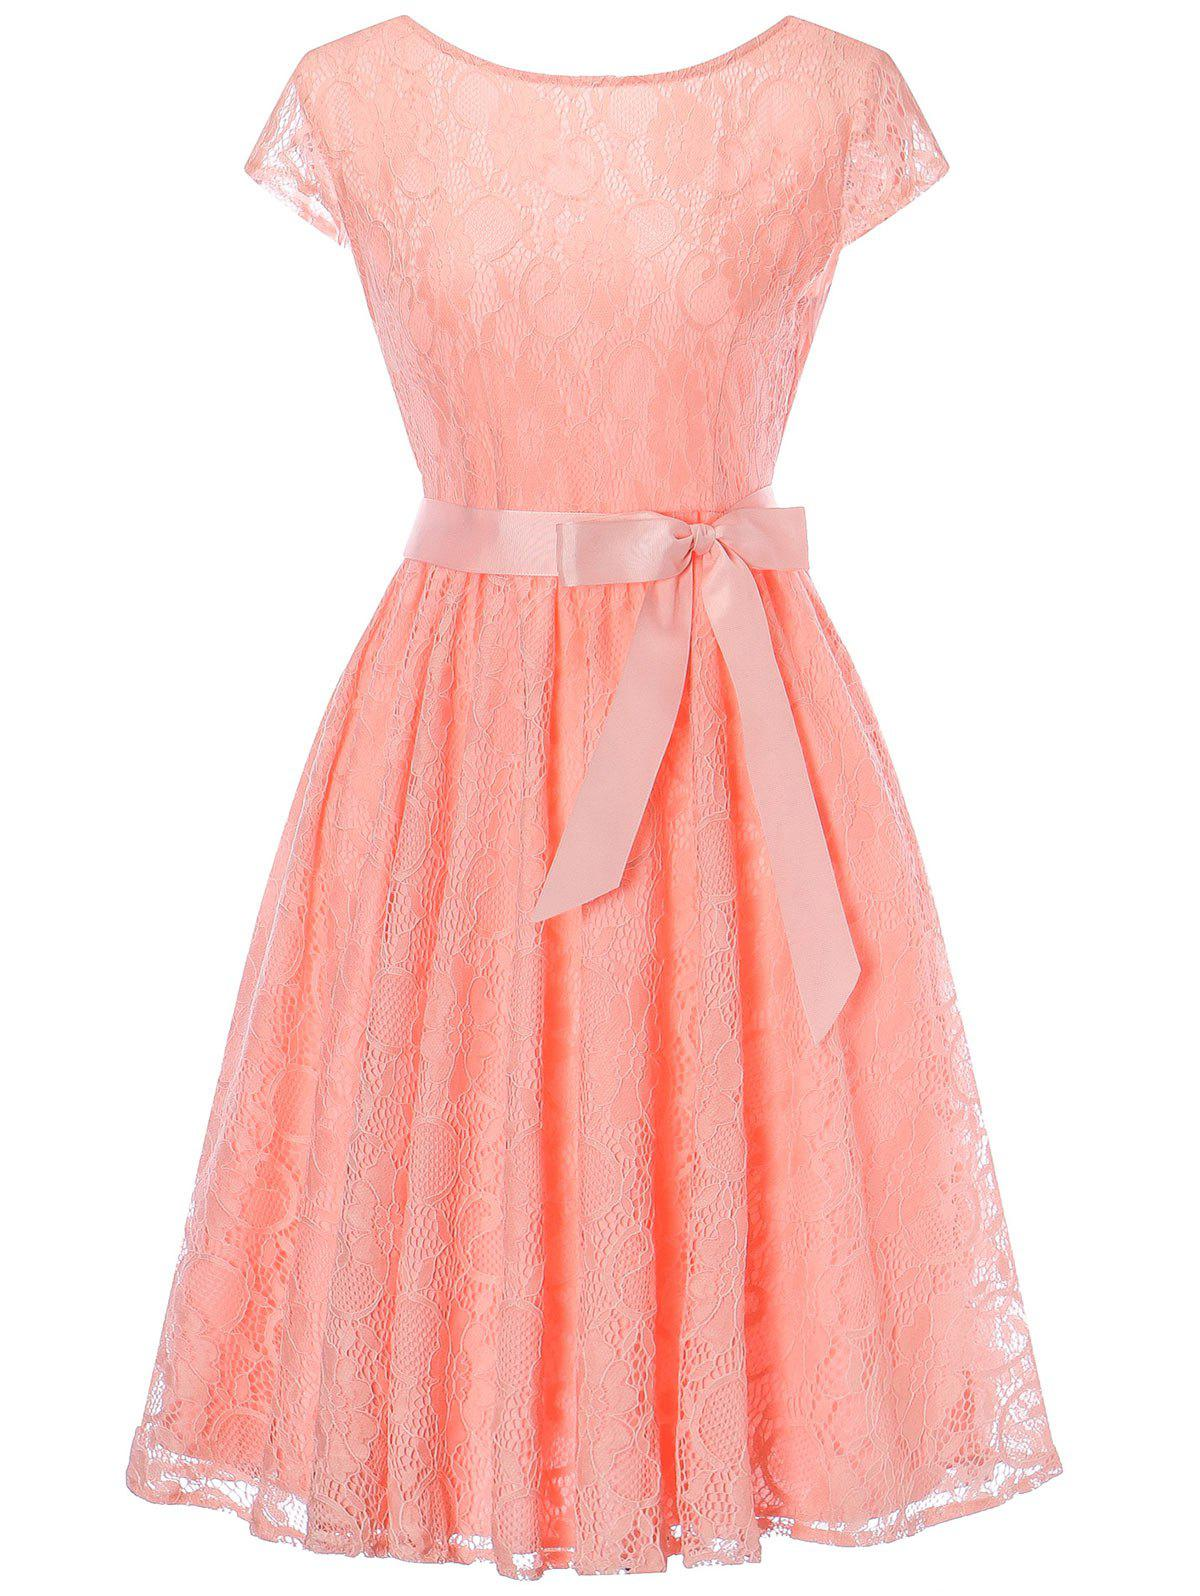 Cap Sleeve Lace Swing Dress with Tie Bowknot - ORANGEPINK L